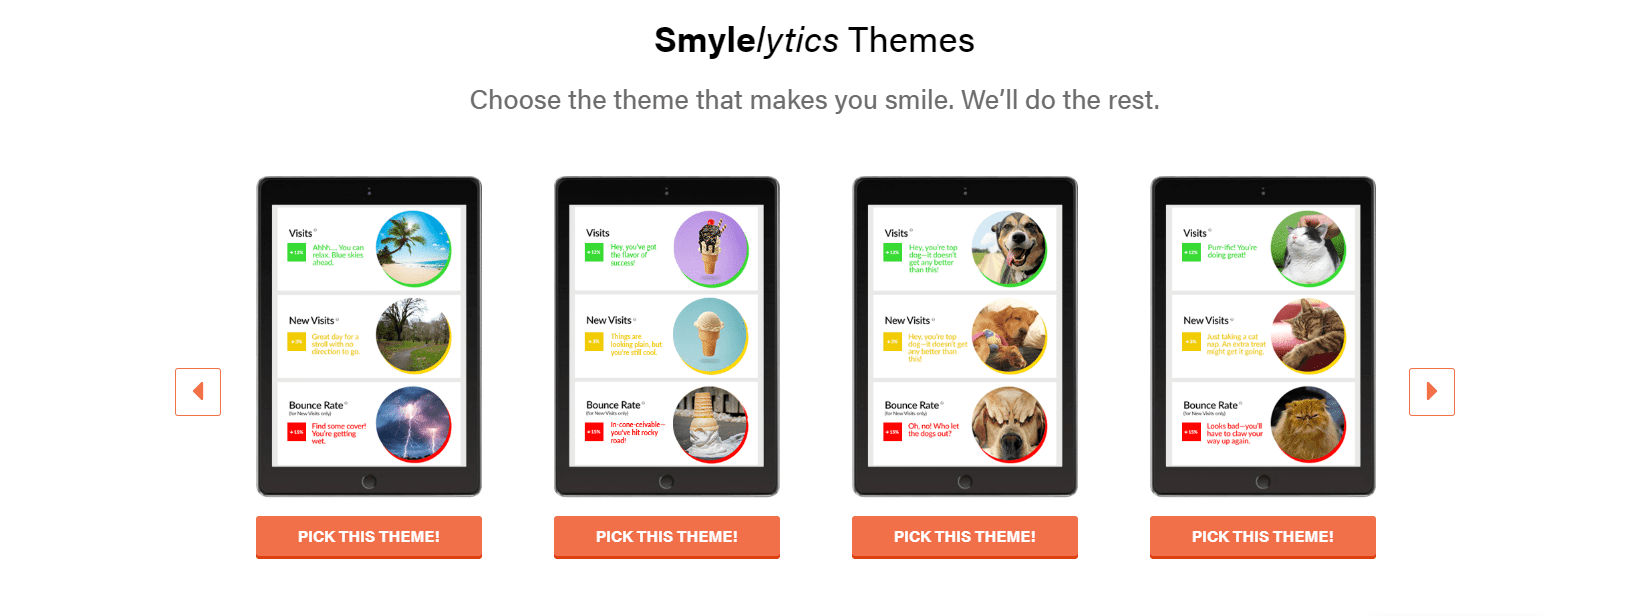 Smylelytics report themes: weather, ice cream, dogs, and cats